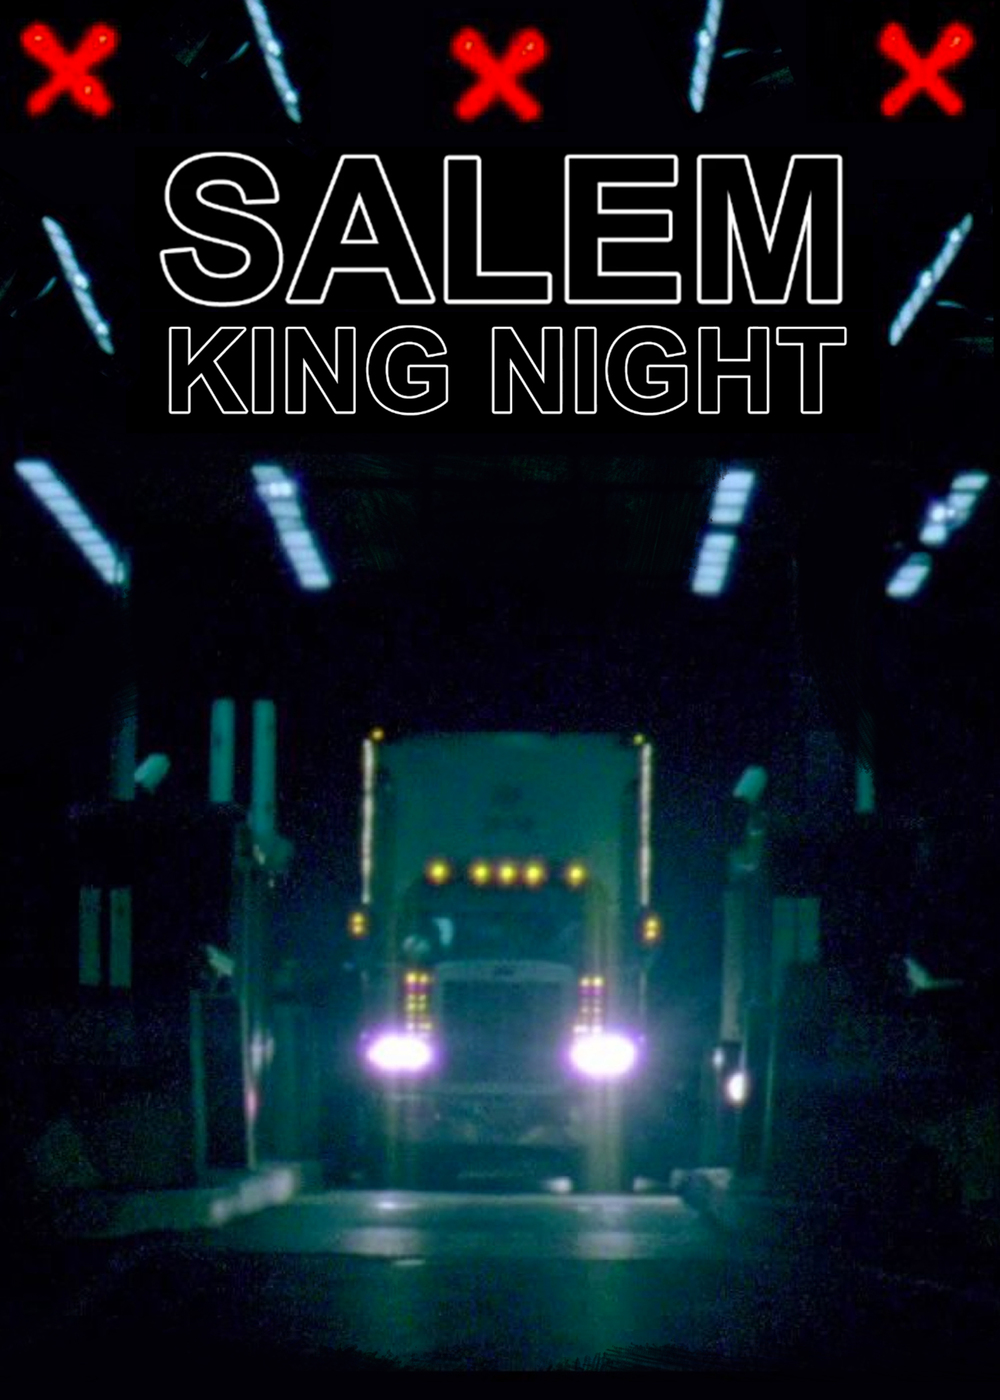 salem king night.jpg